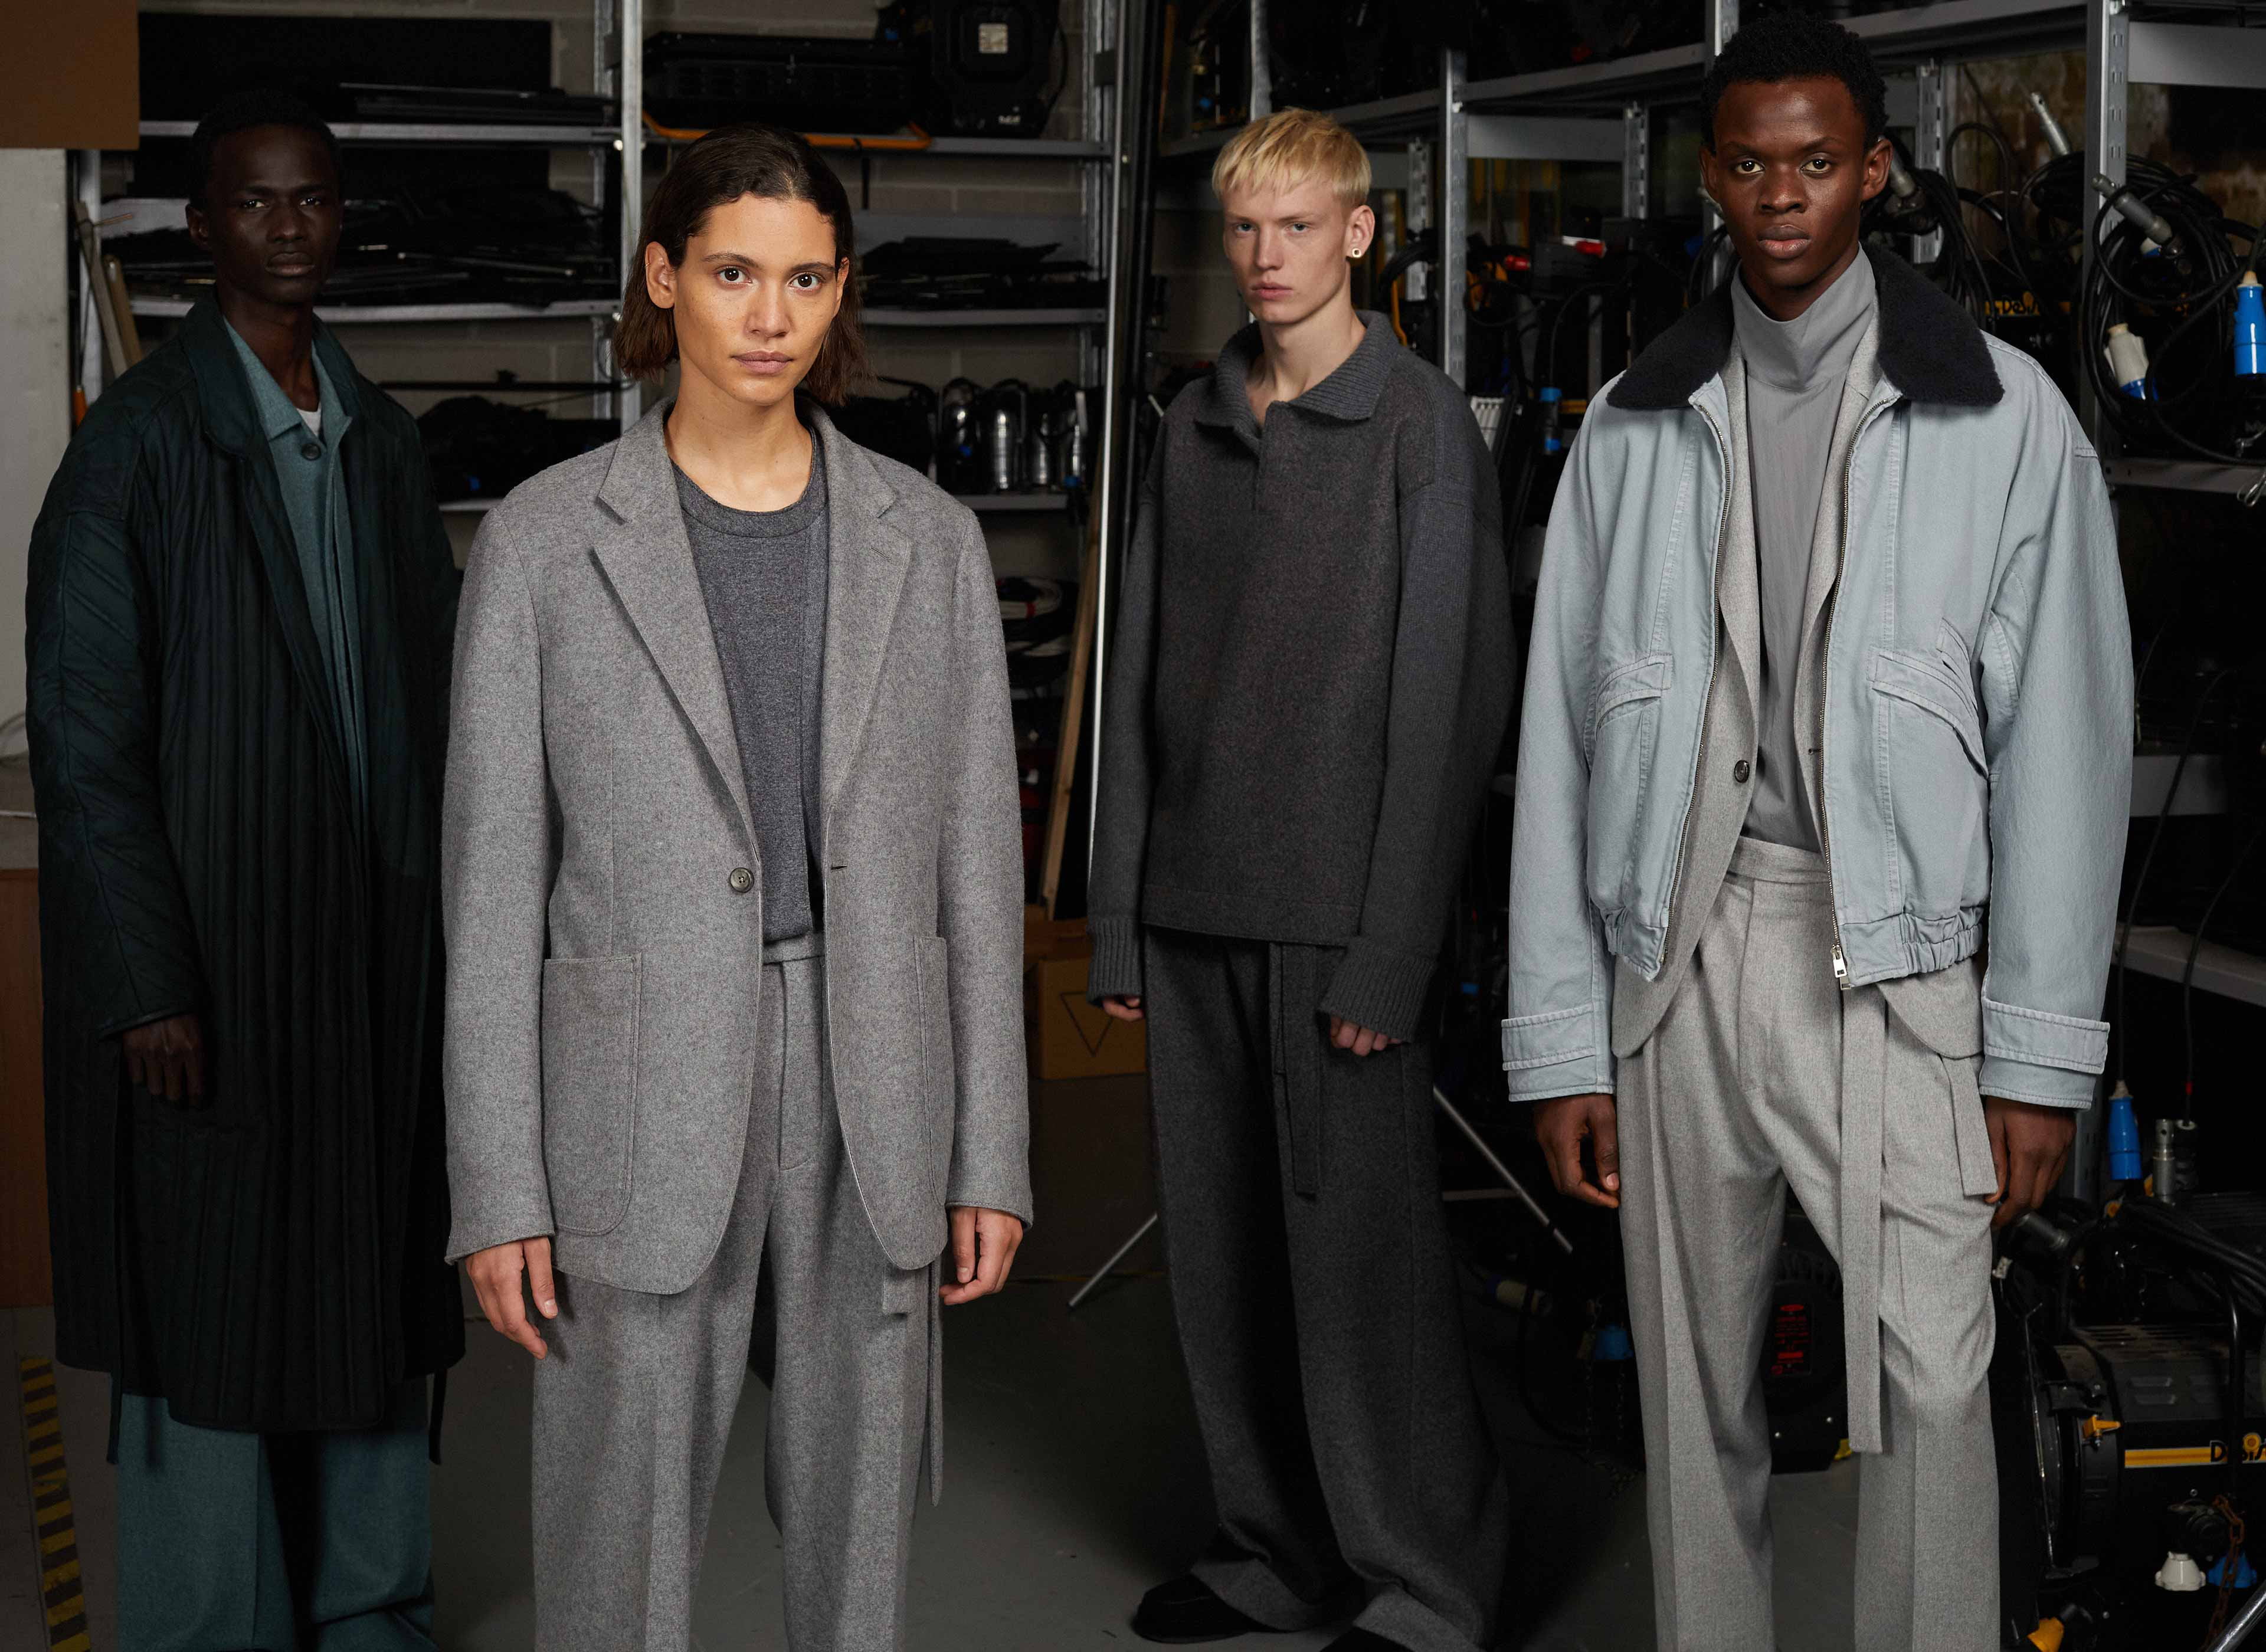 Men's fashion show look by Alessandro Sartori | Zegna